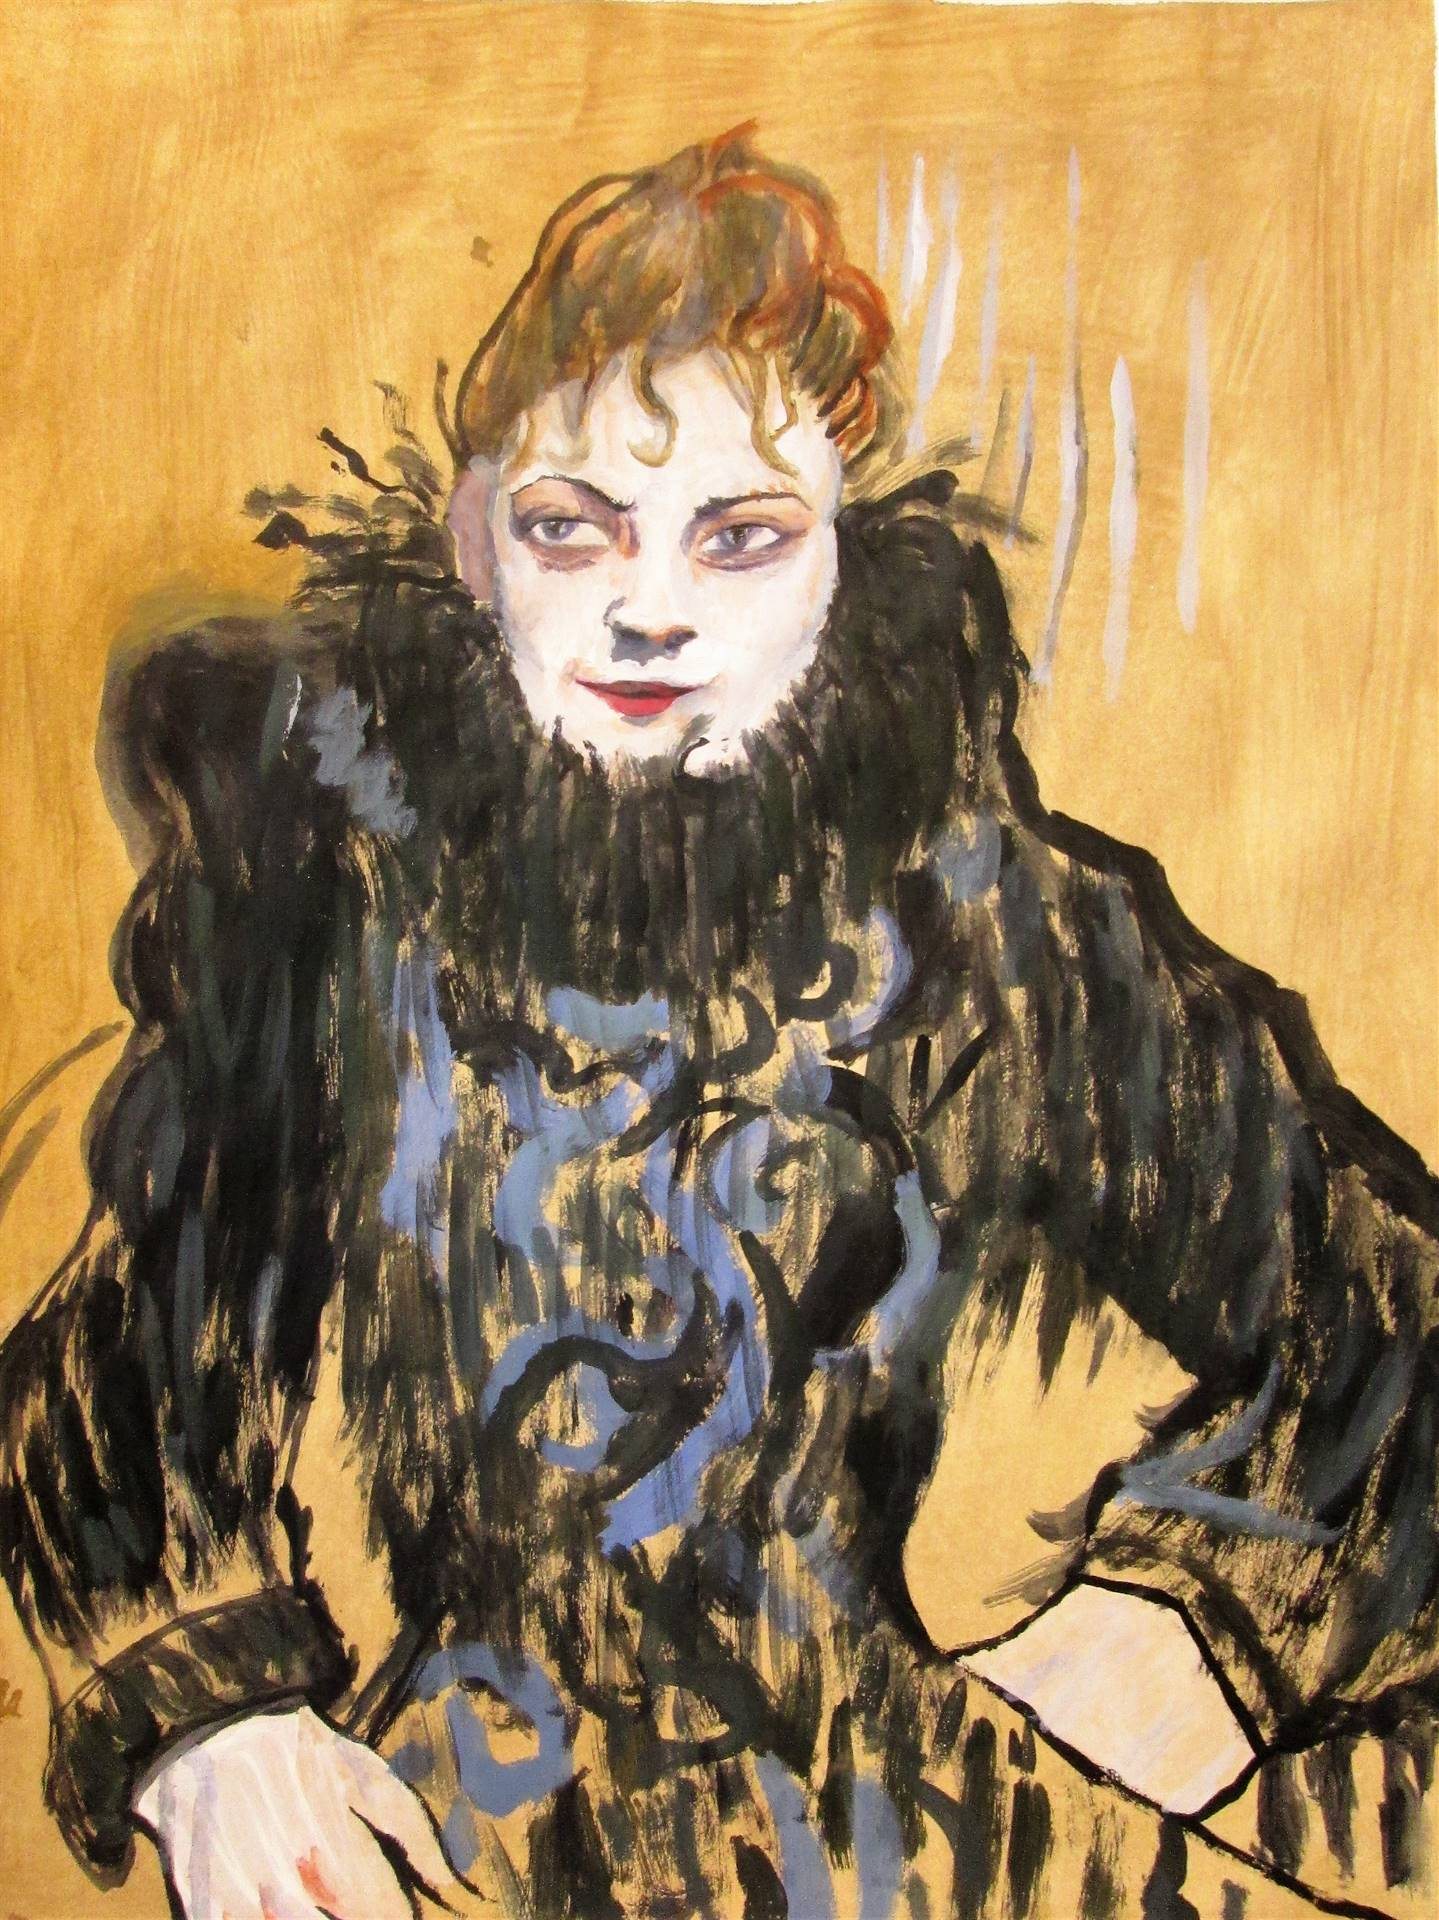 Image of student artwork based on the artist Toulouse Lautrec.